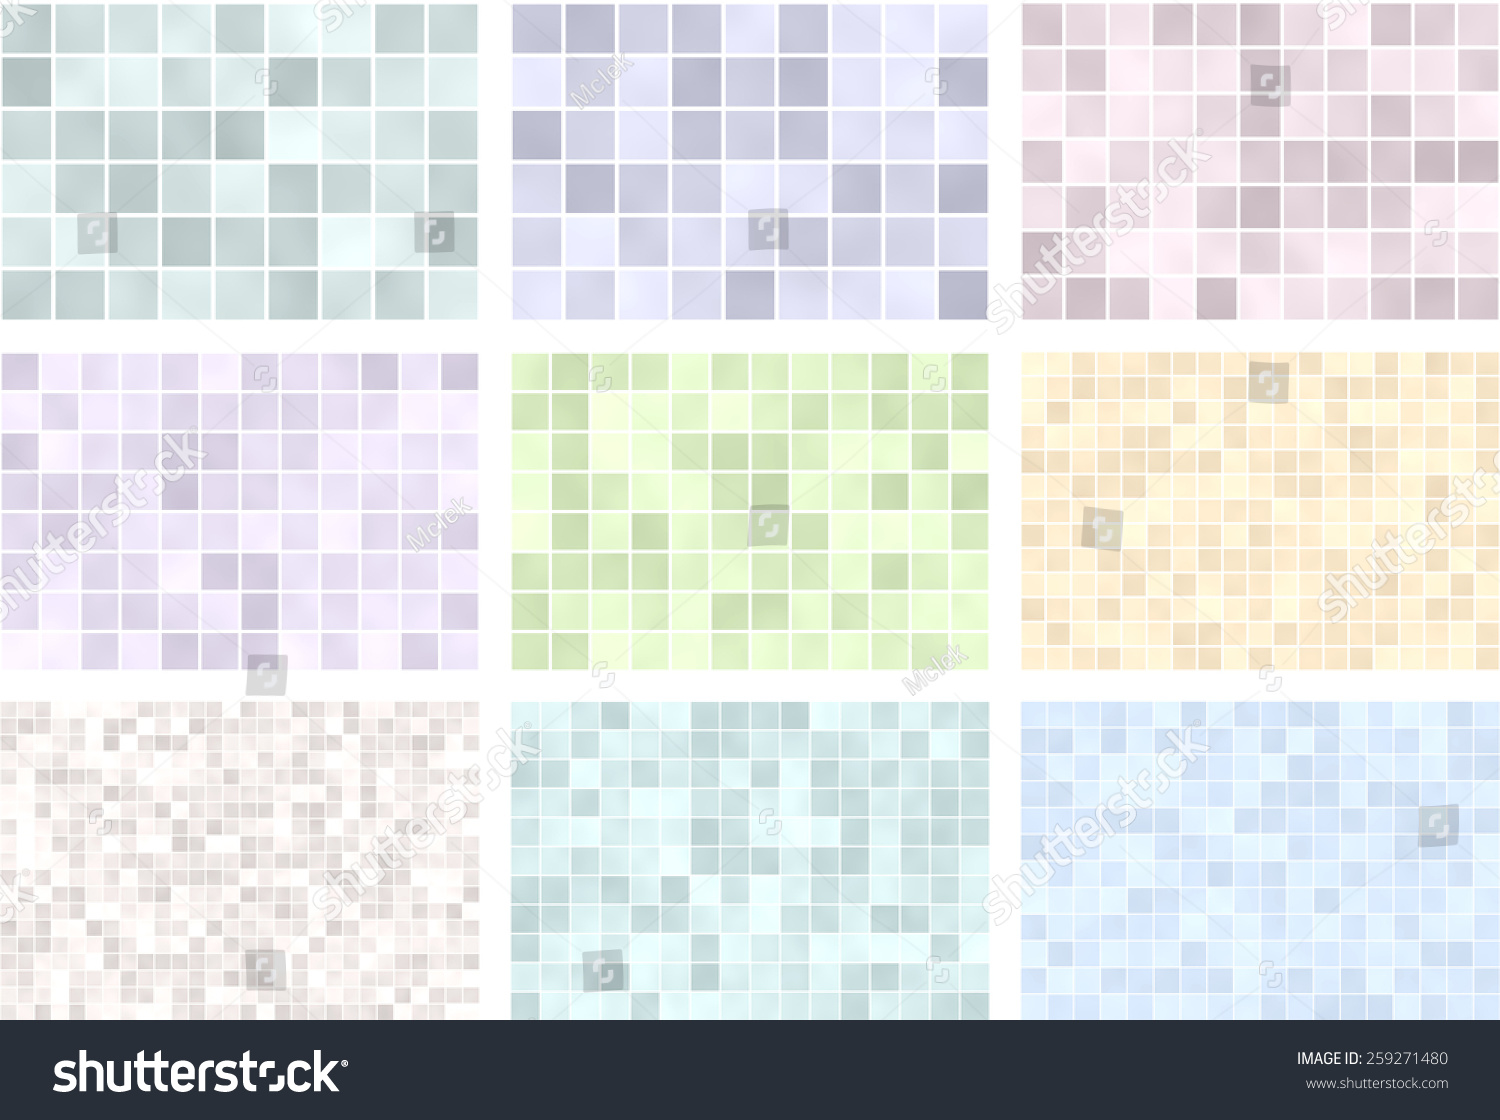 Royalty Free Stock Illustration of Seamless Tiles Pattern Background ...